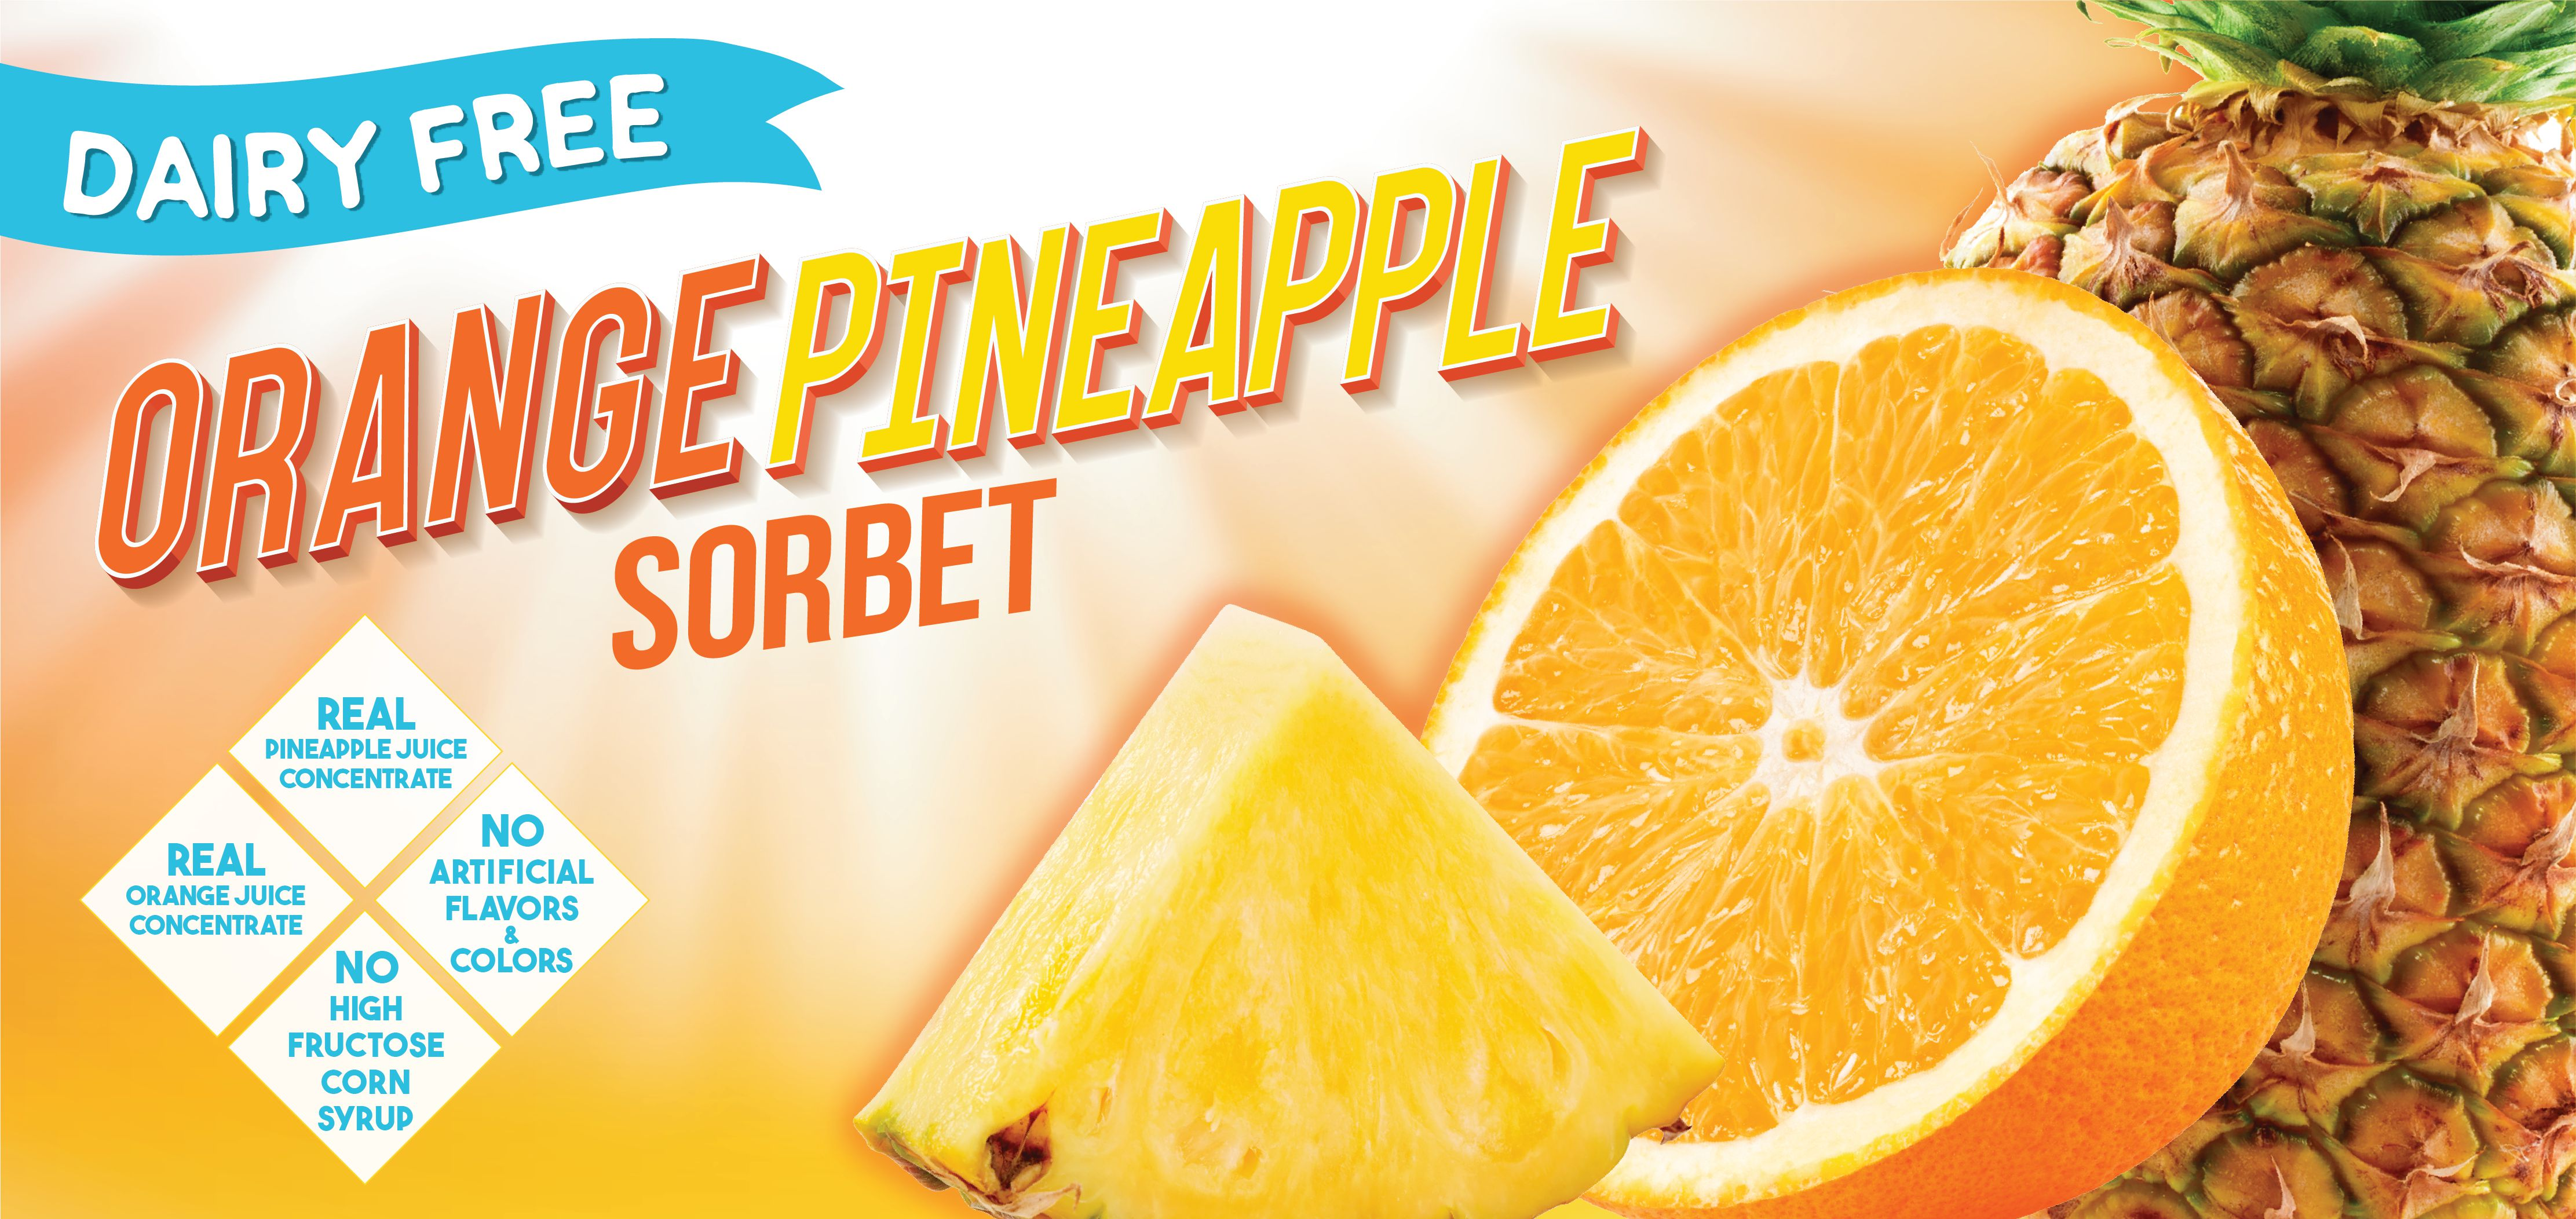 orange pineapple sorbet label image